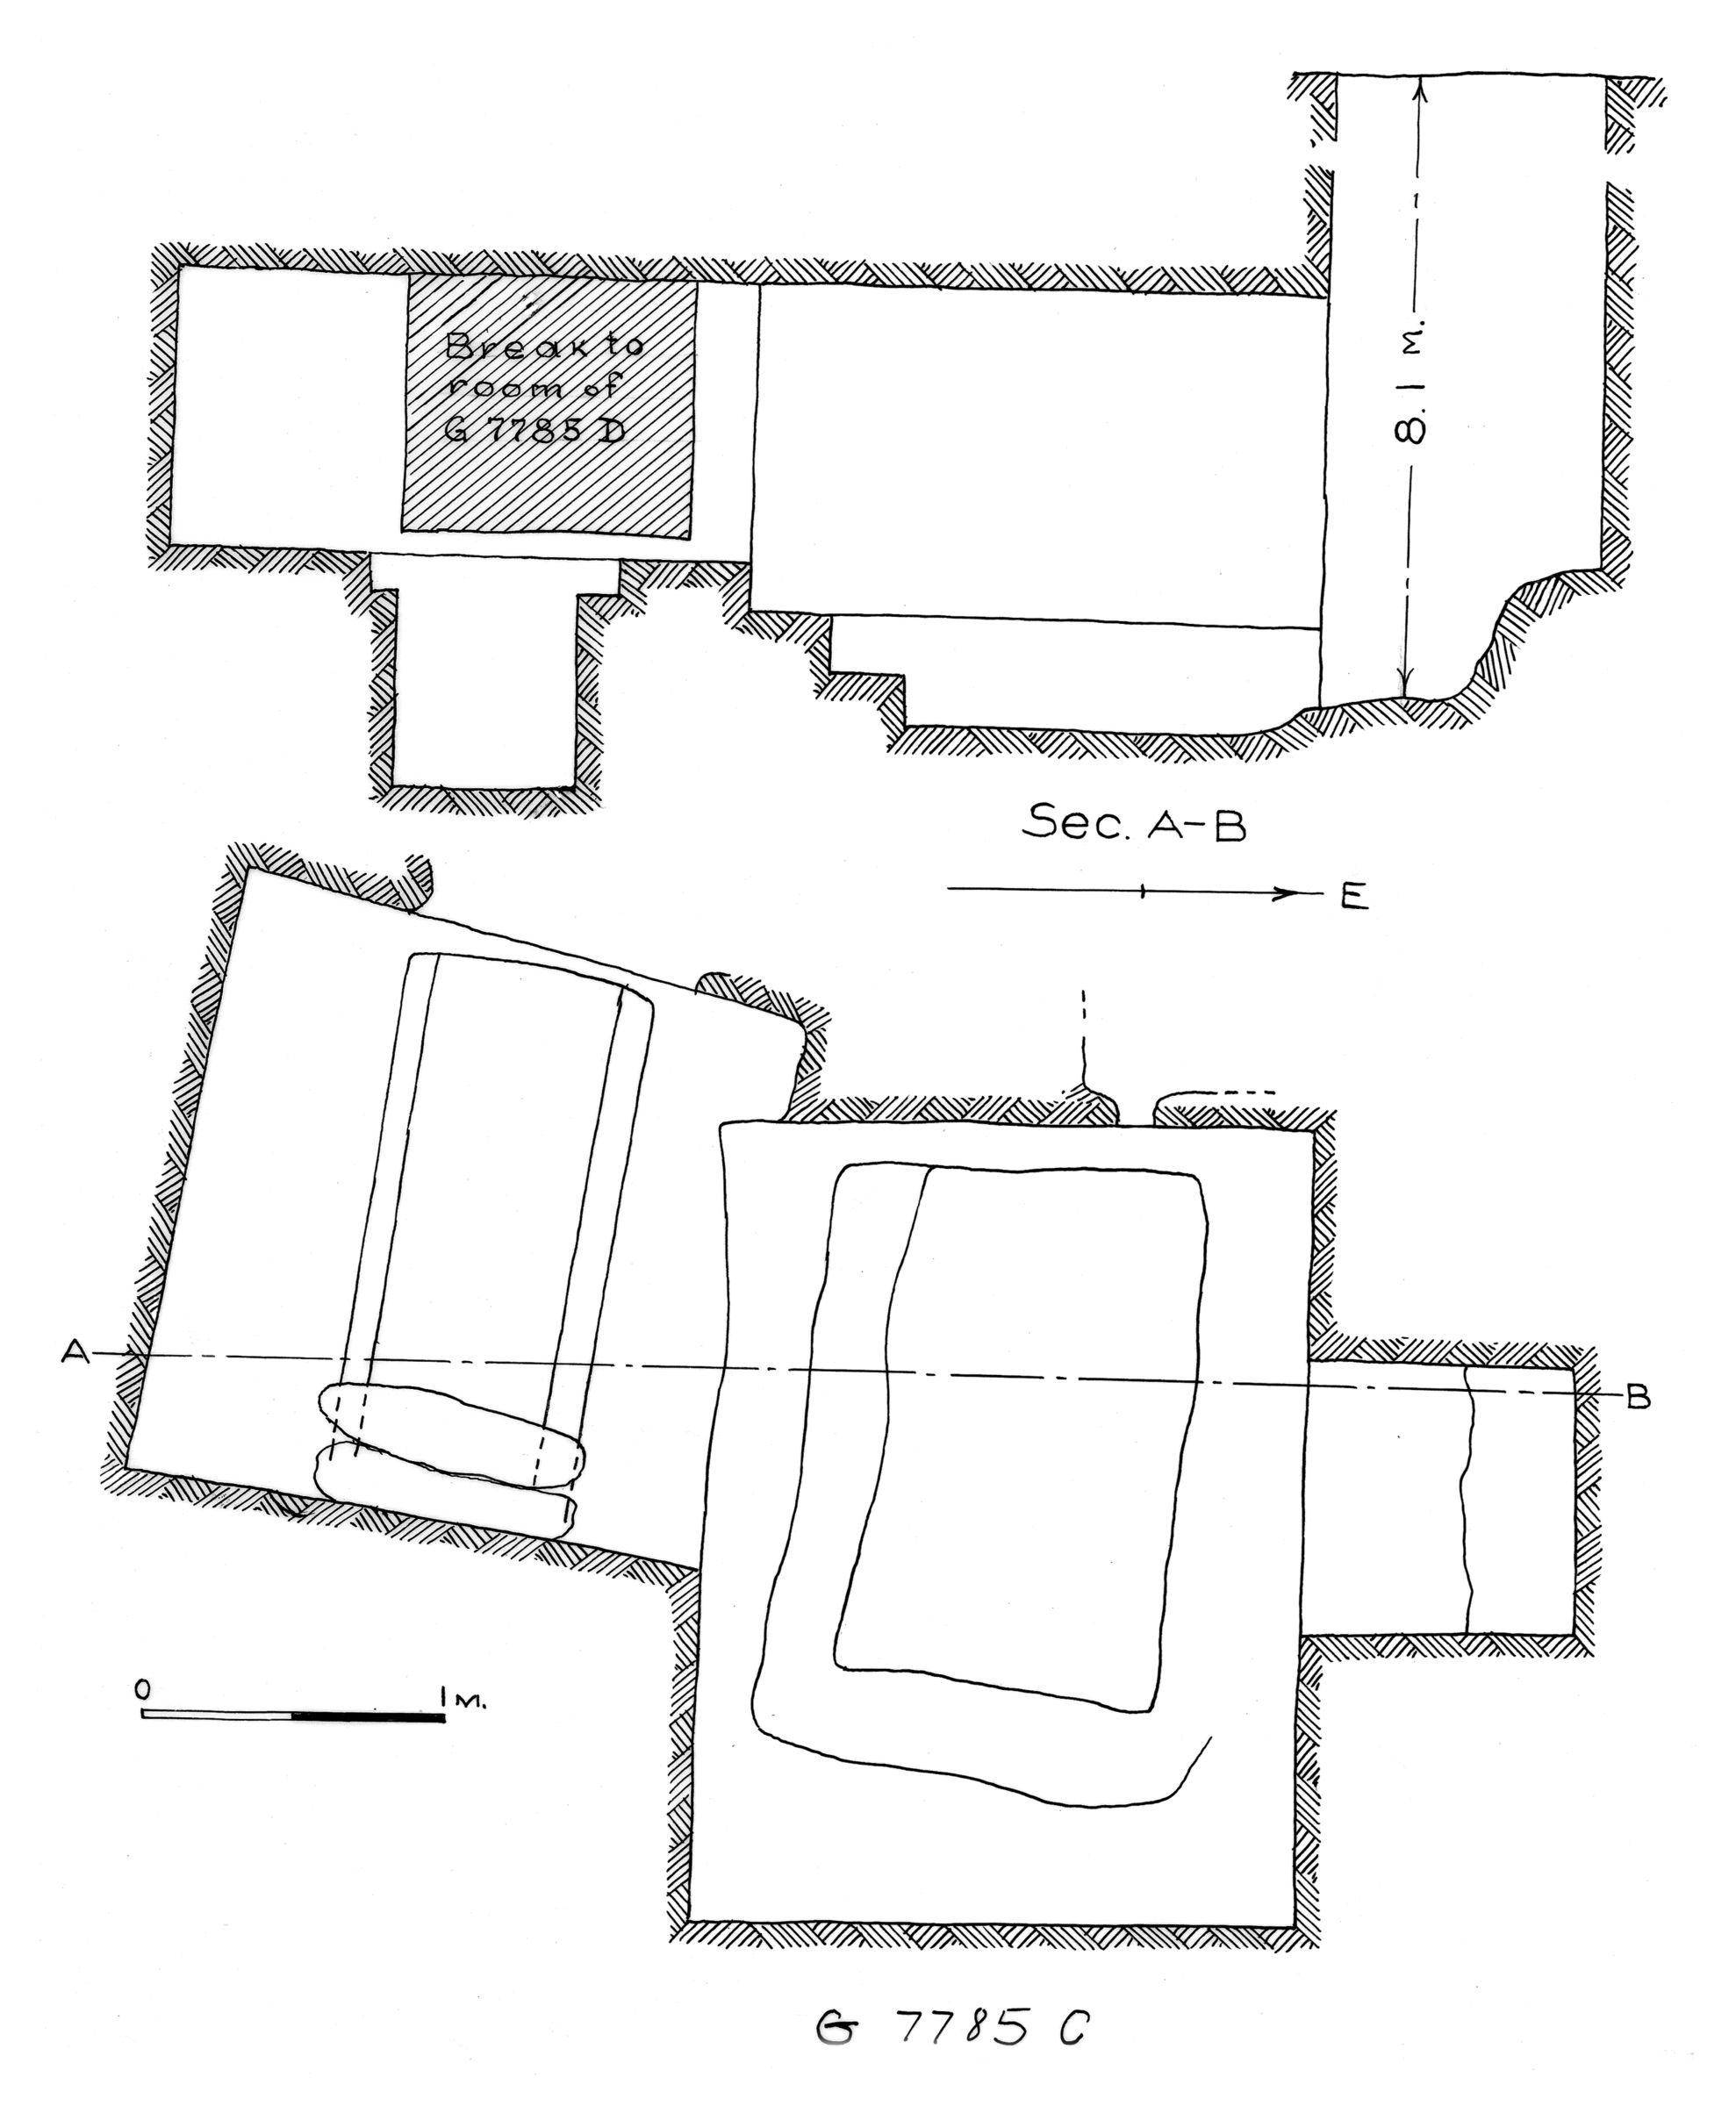 Maps and plans: G 7785, Shaft C